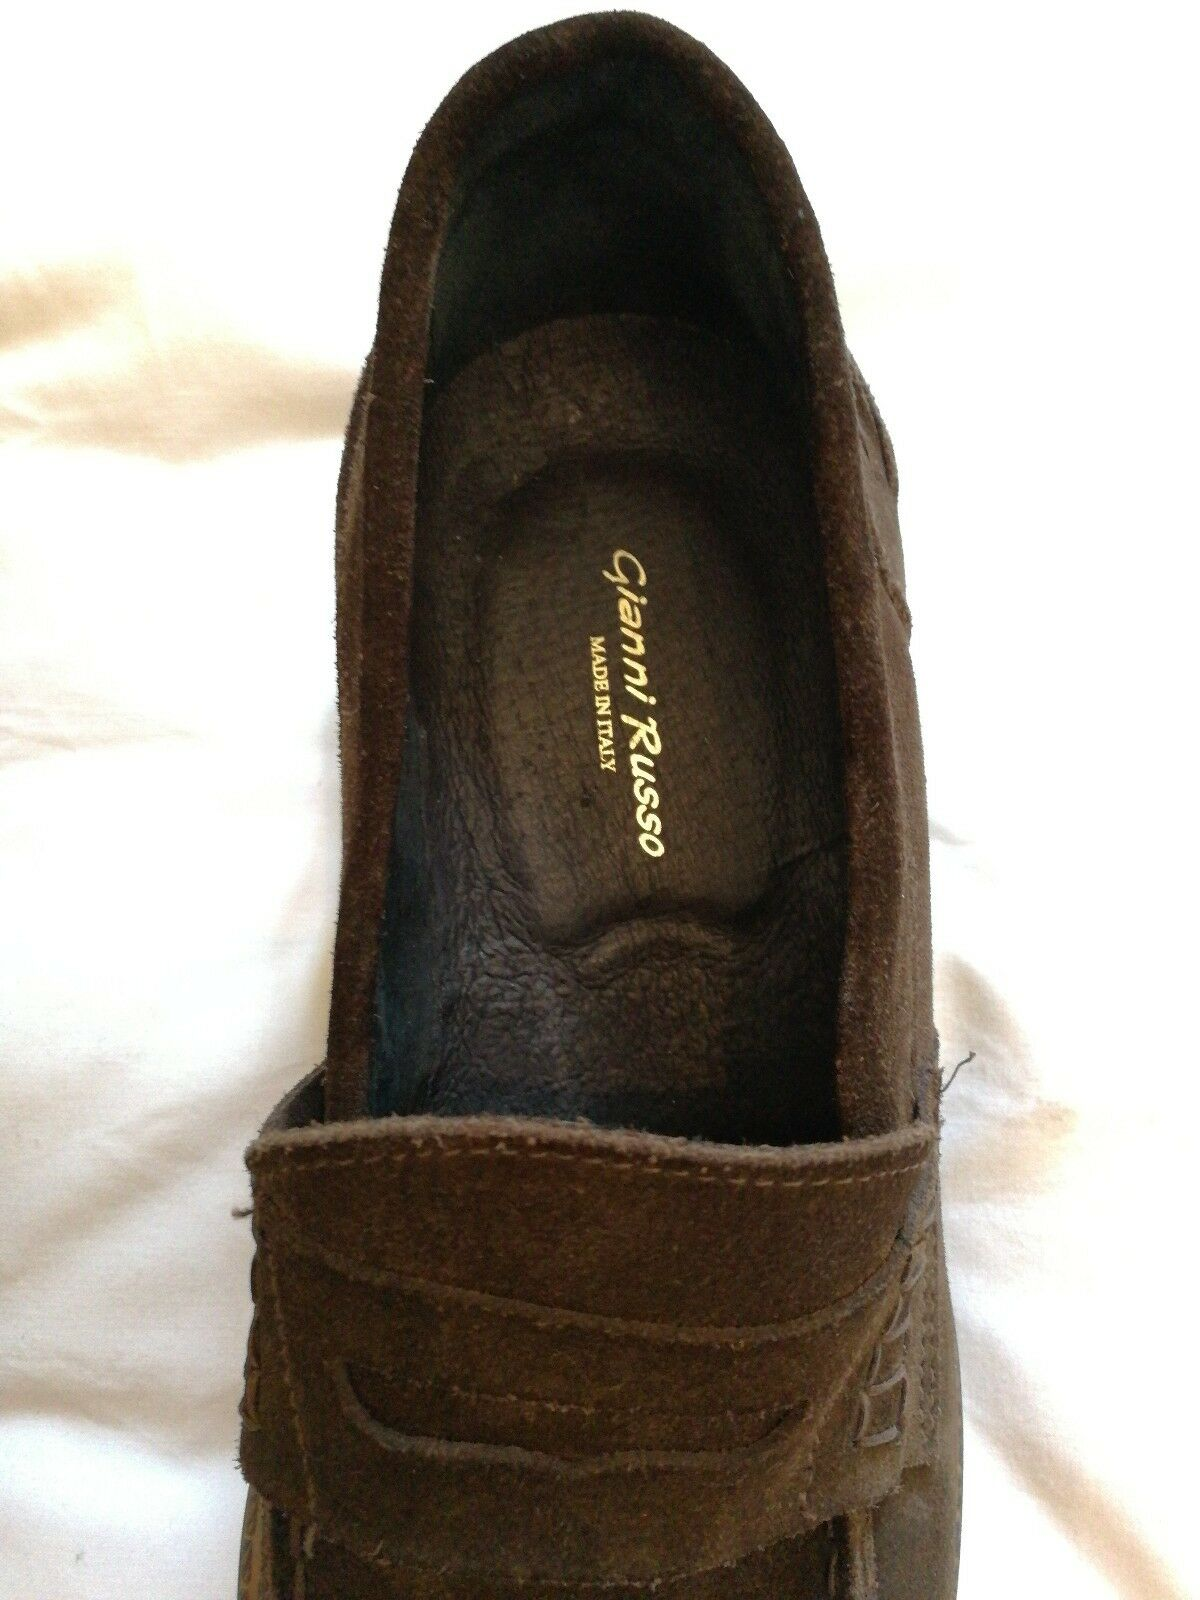 Gianni Russo Russo Gianni Suede Leder Slip-on Penny Loafers Schuhes Braun uk 9 eu 43 5d872a